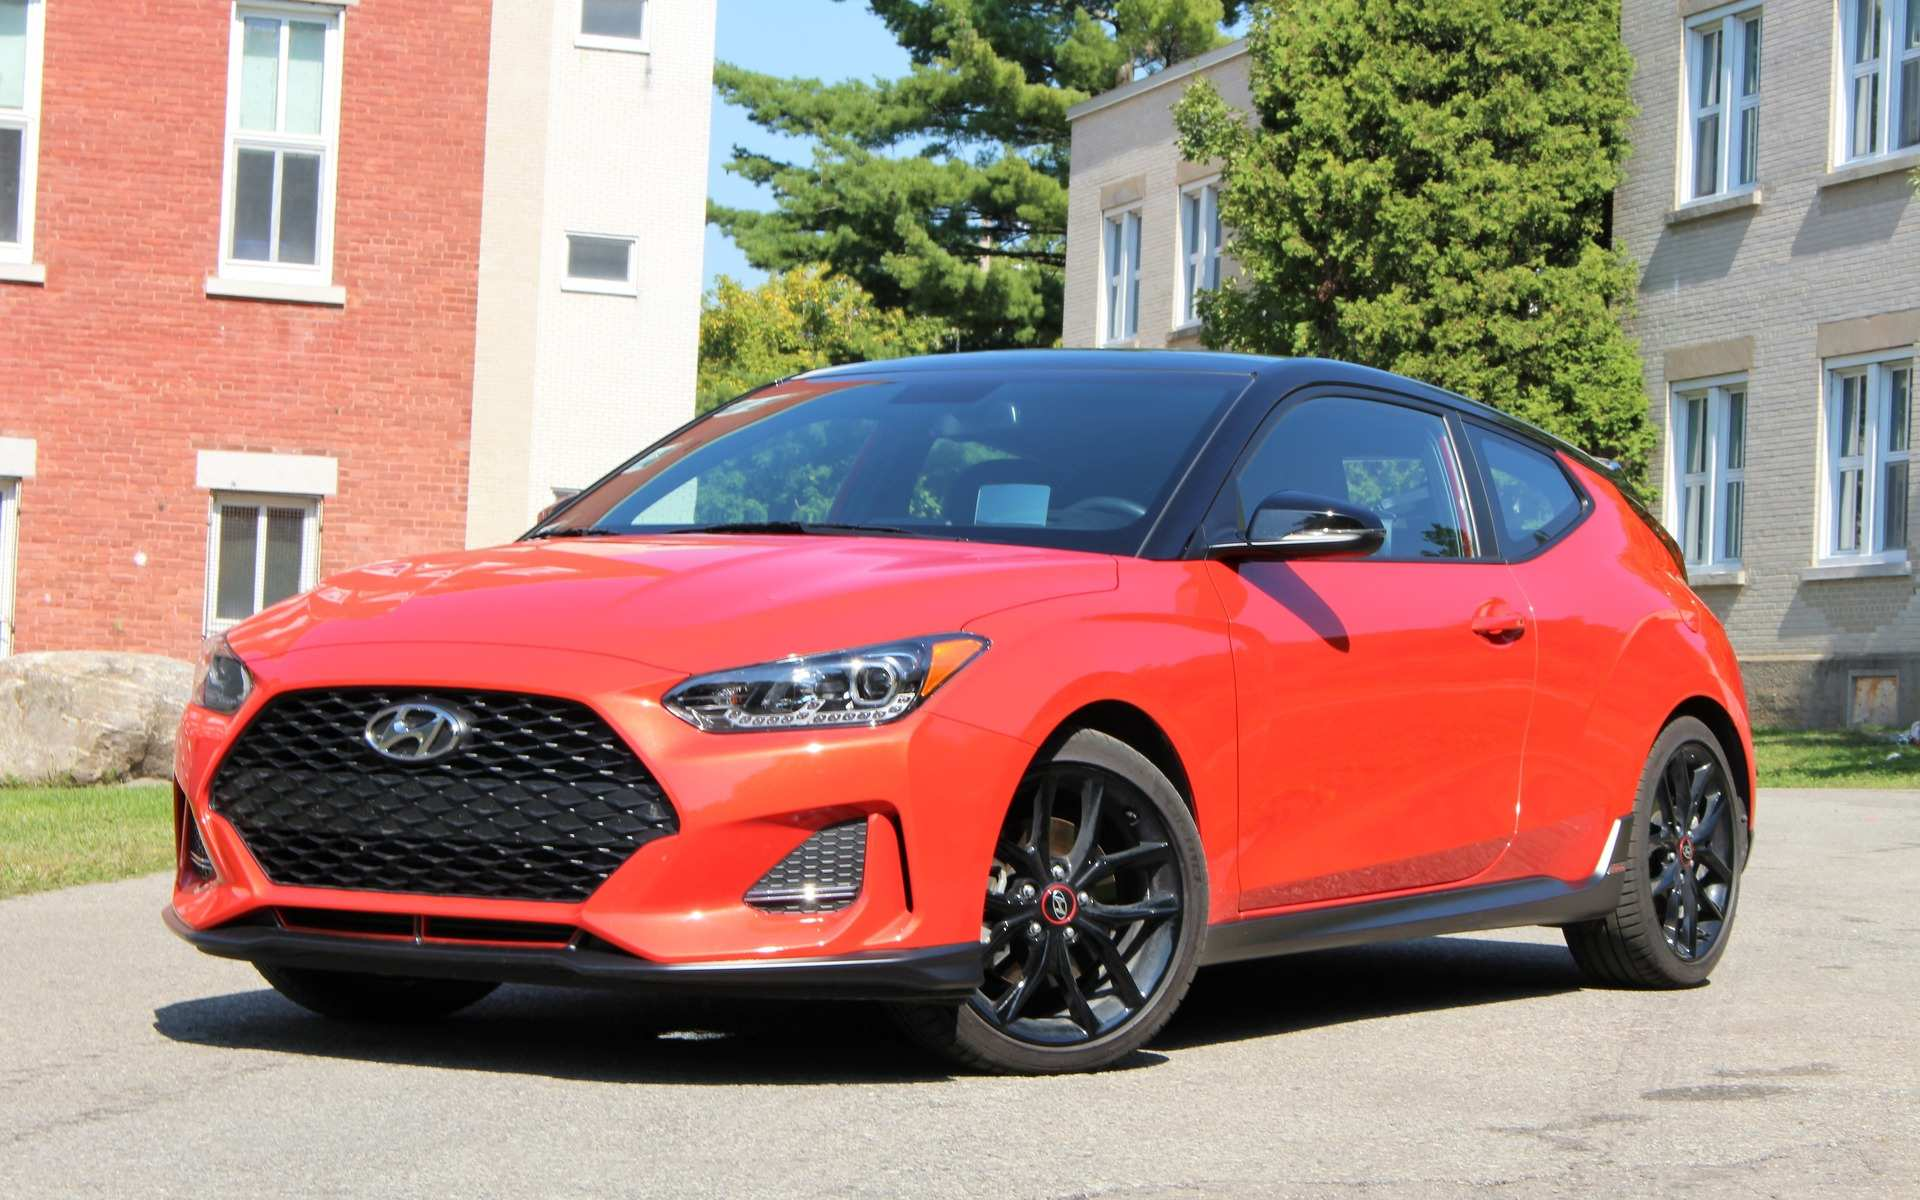 60 Best 2019 Hyundai Veloster Review And Release Date